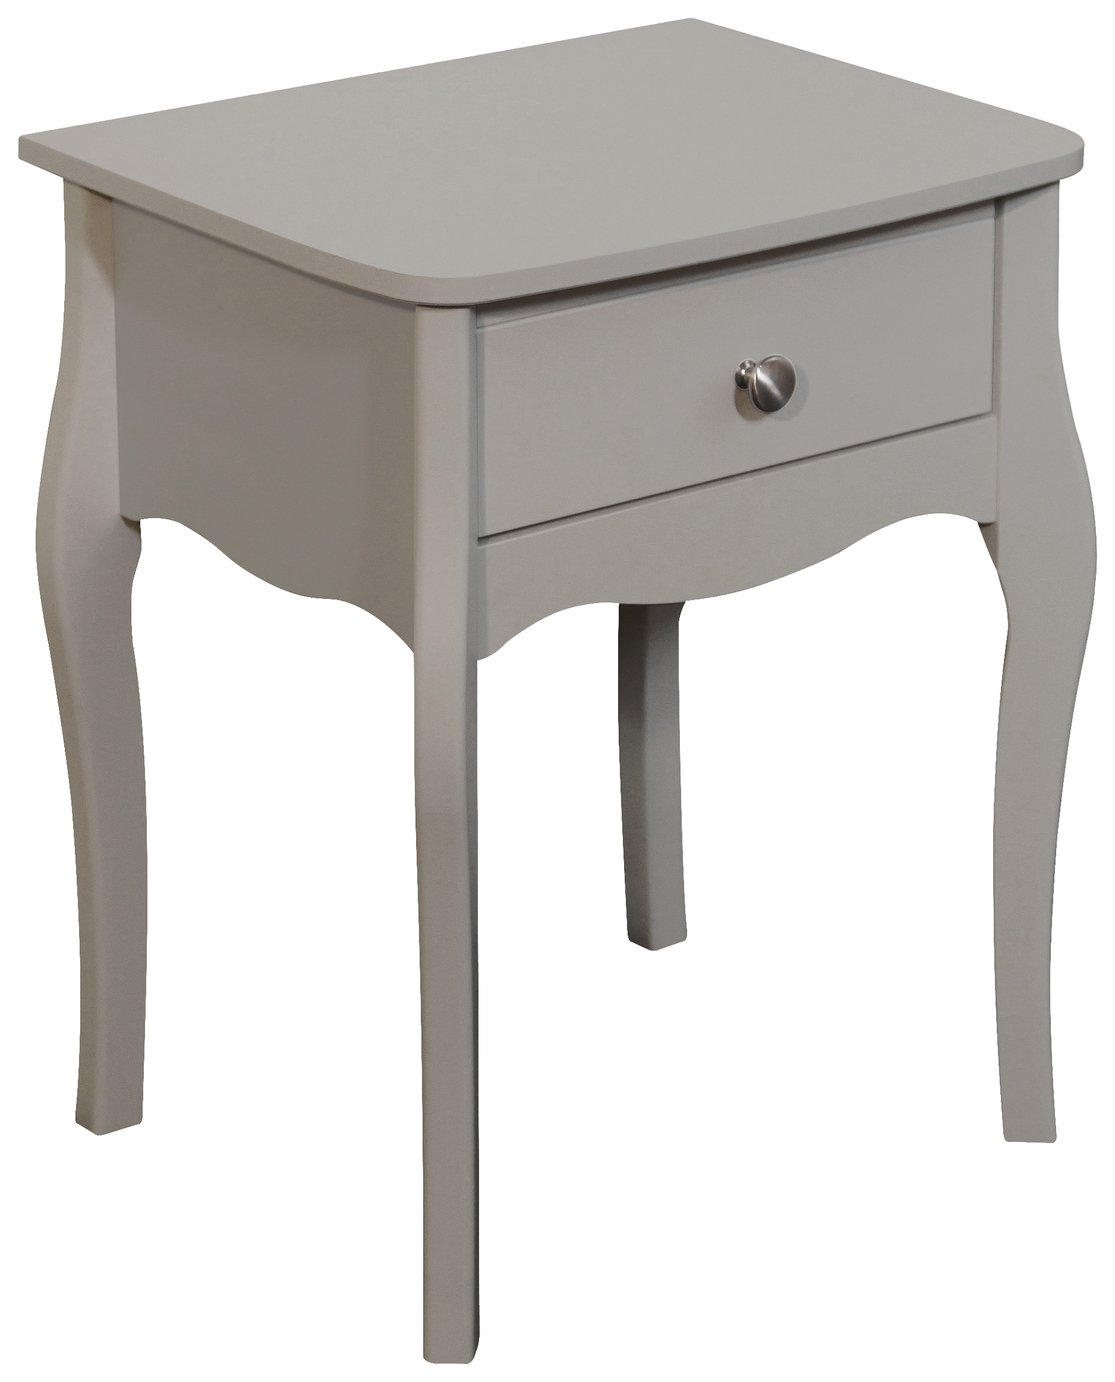 Image of Baroque 1 Drawer Bedside Chest - Grey